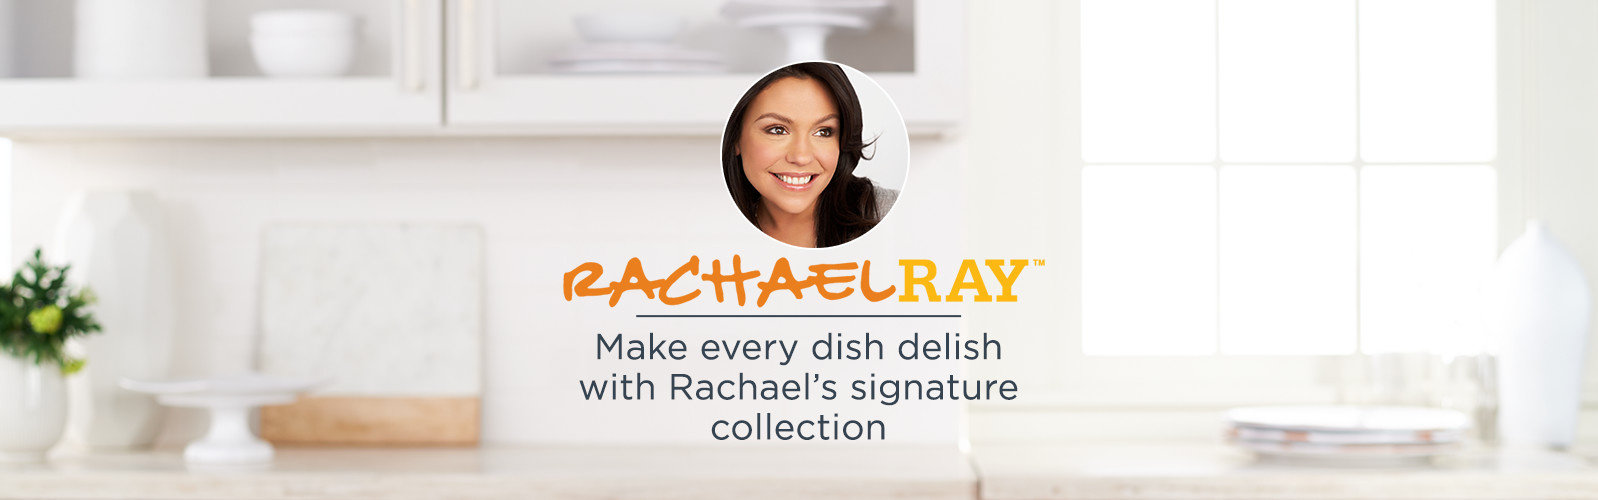 Rachel Ray, Make every dish delish with Rachael's signature collection